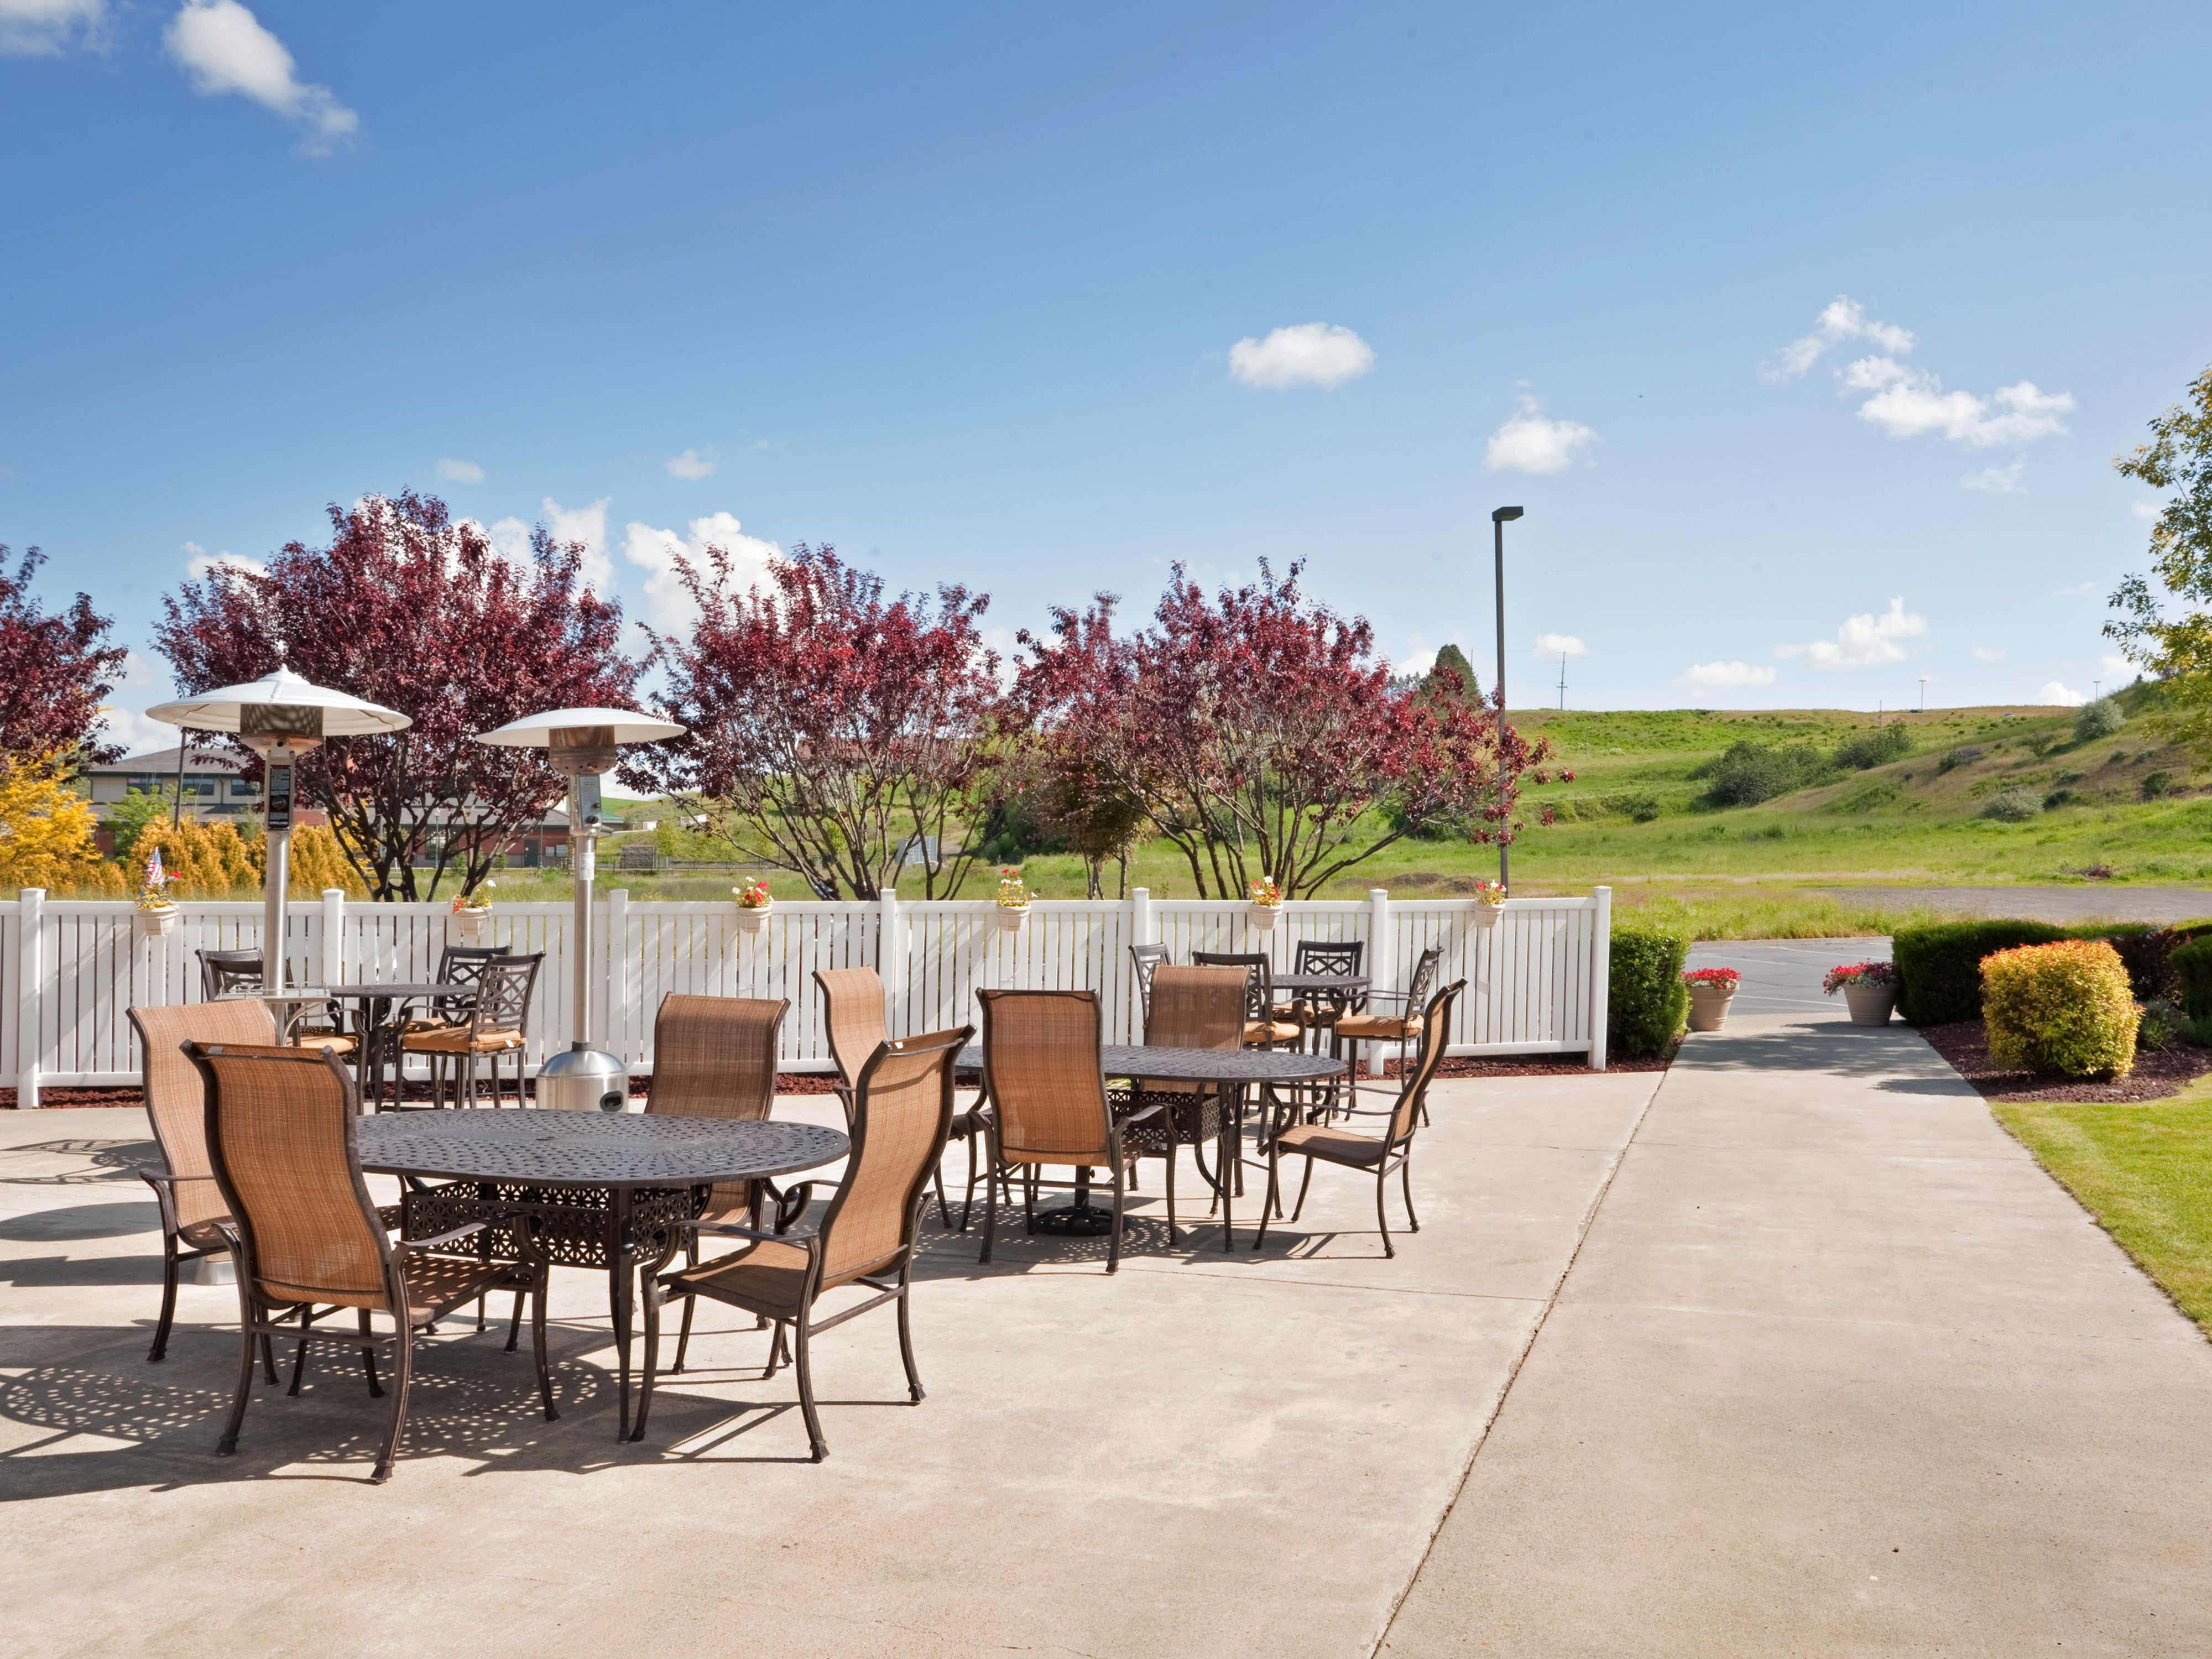 The patio is a great place to bbq and enjoy the sun.